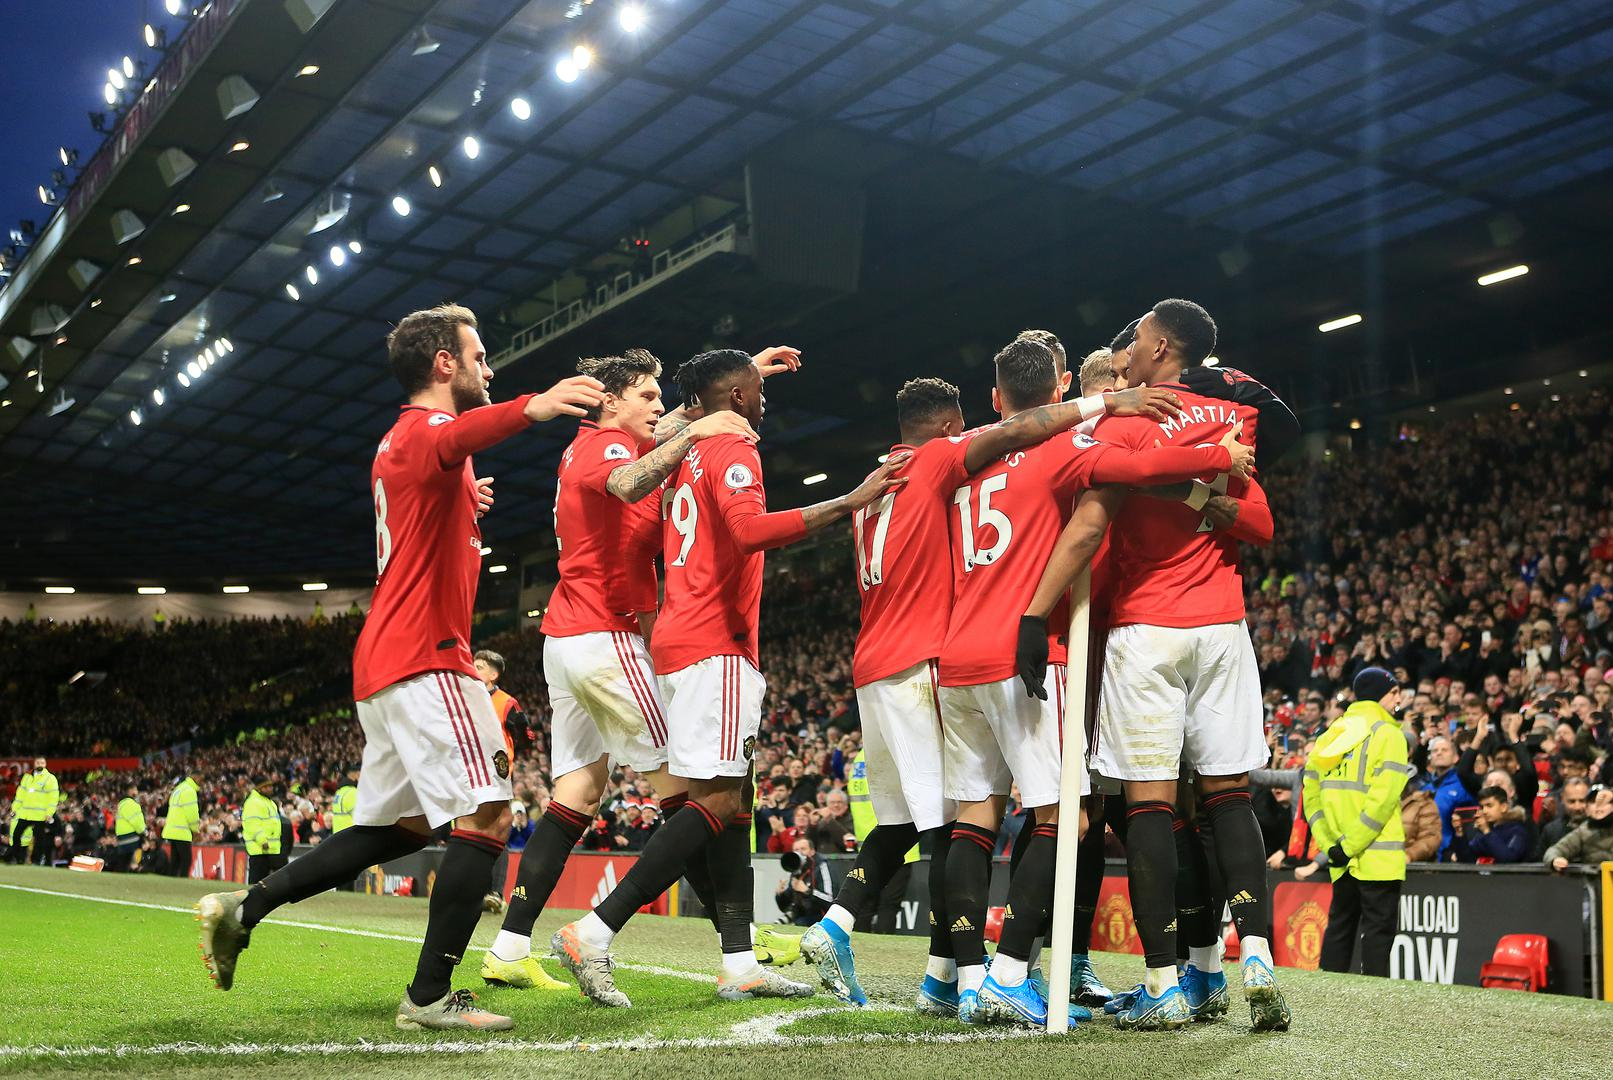 Manchester United players celebrate scoring against Norwich City.